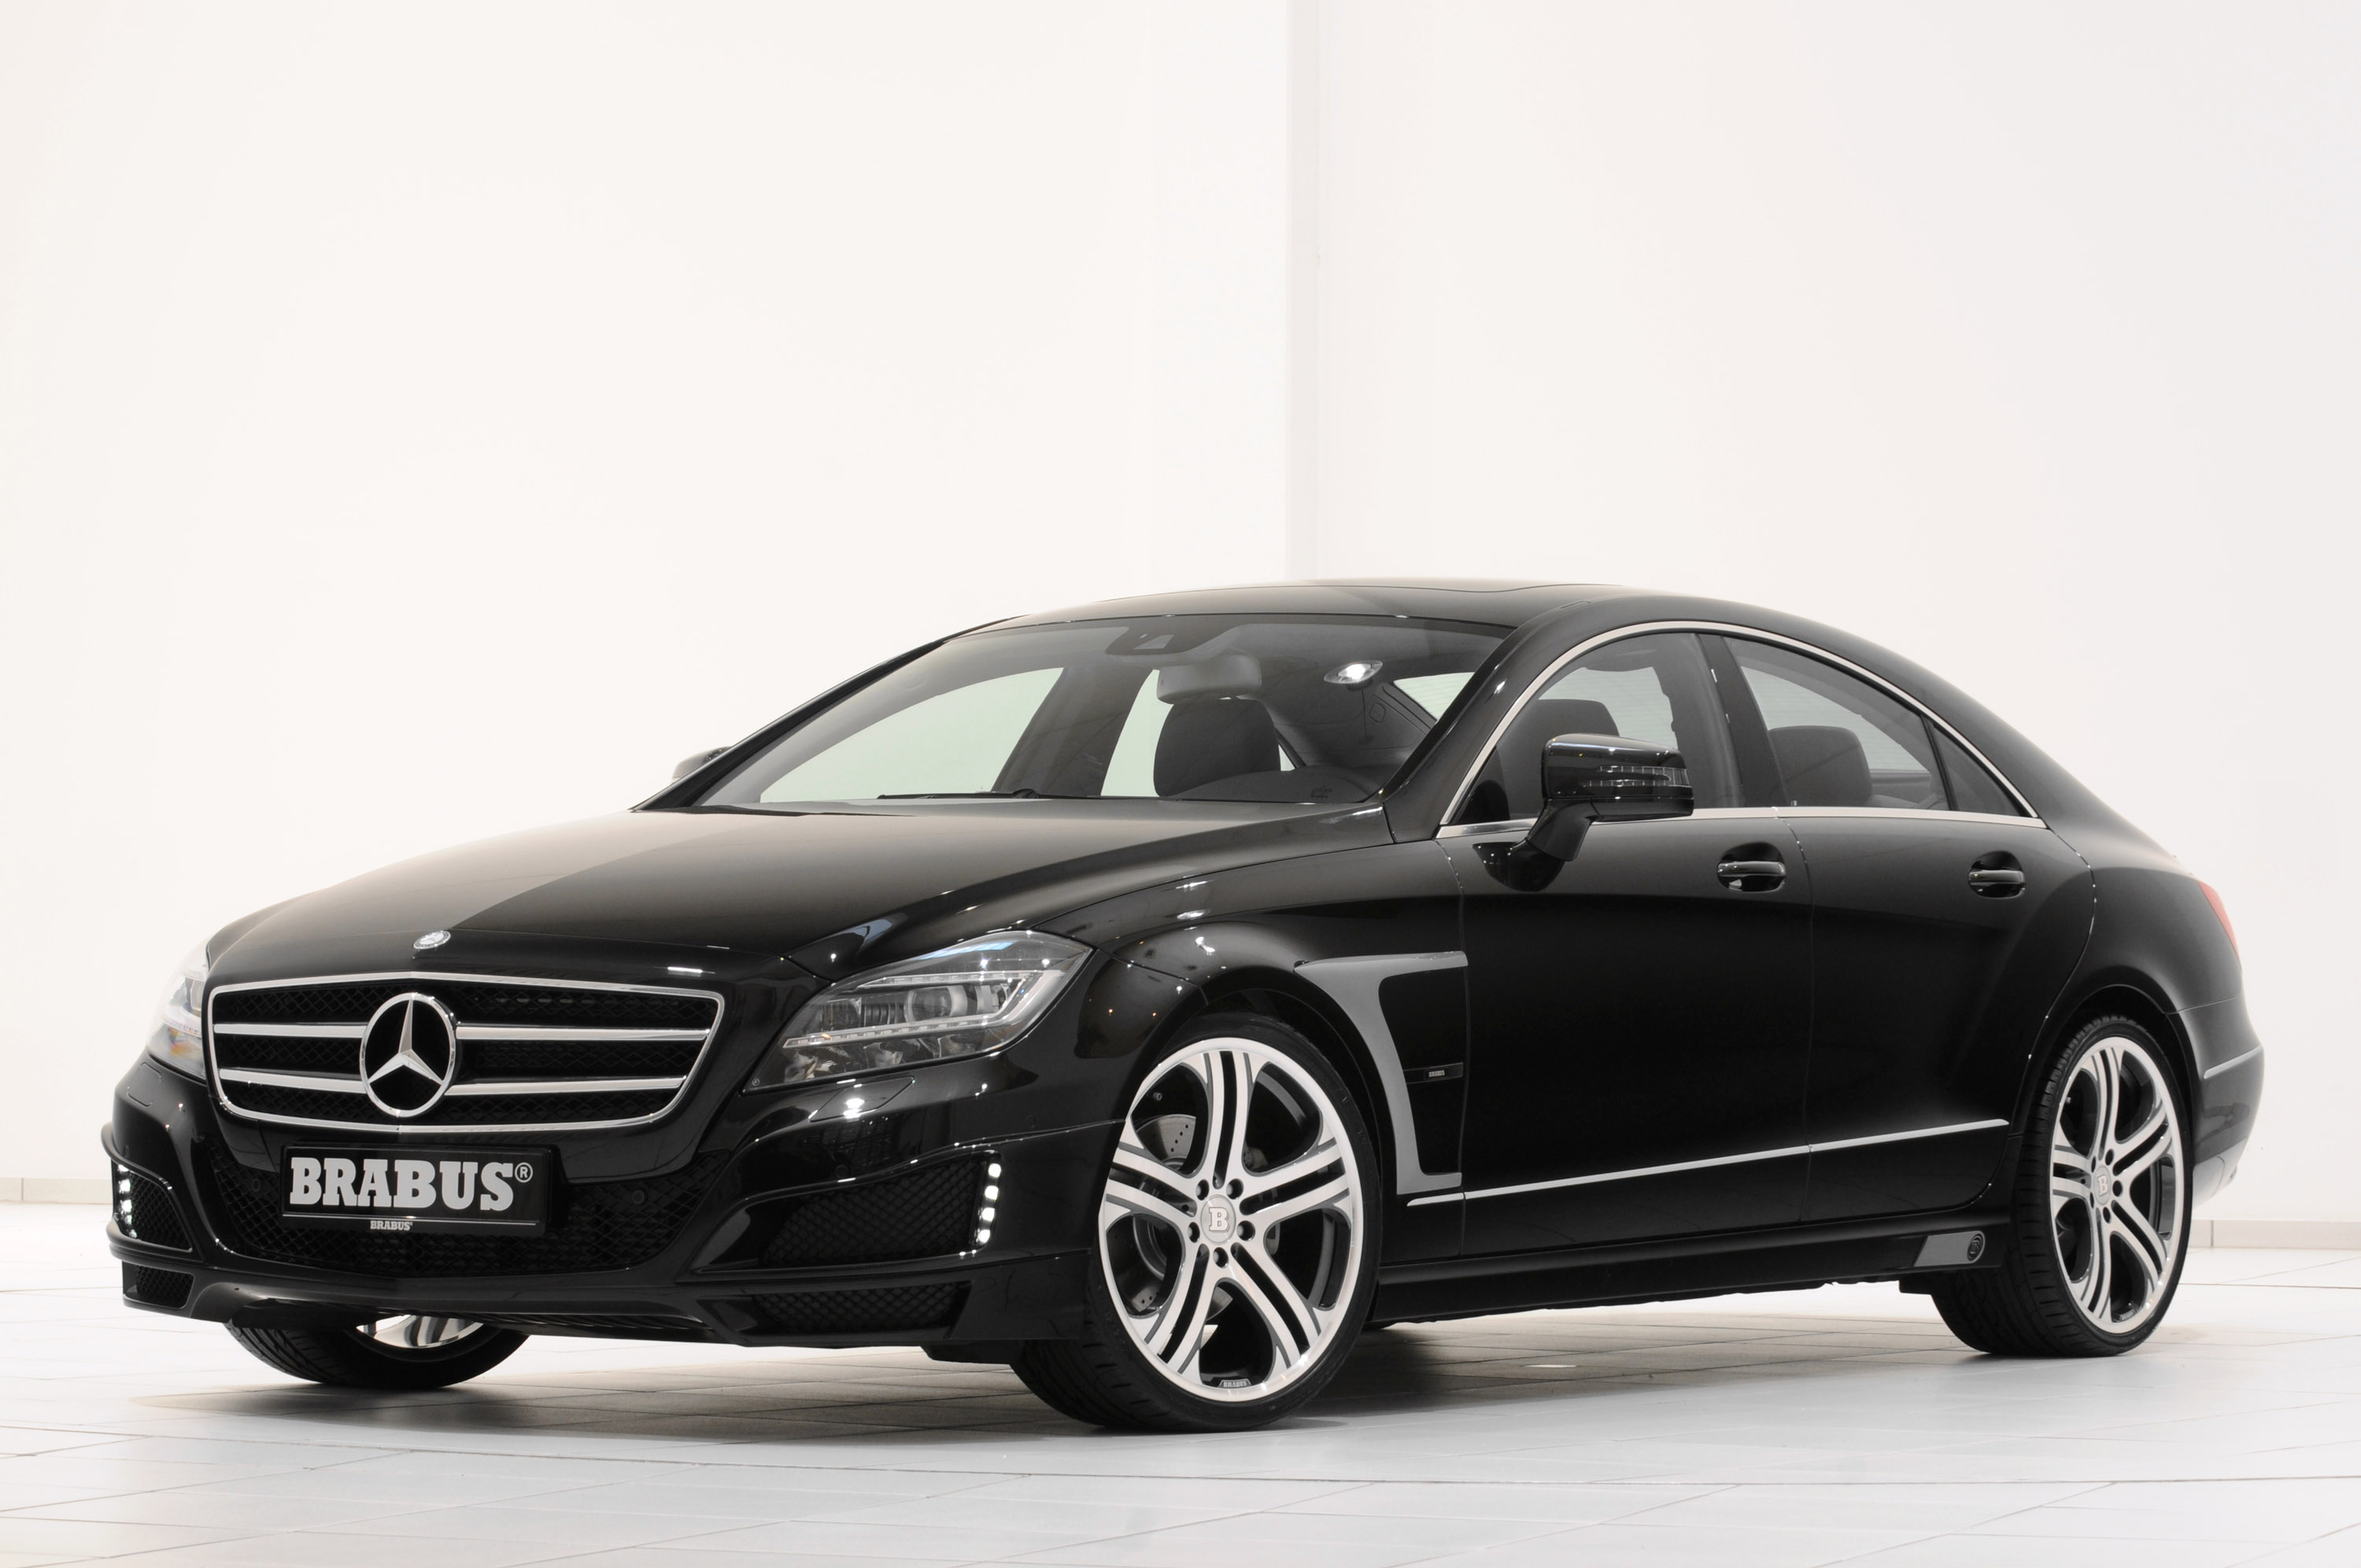 Brabus 2012 mercedes cls coupe for Mercedes benz cls 300 coupe